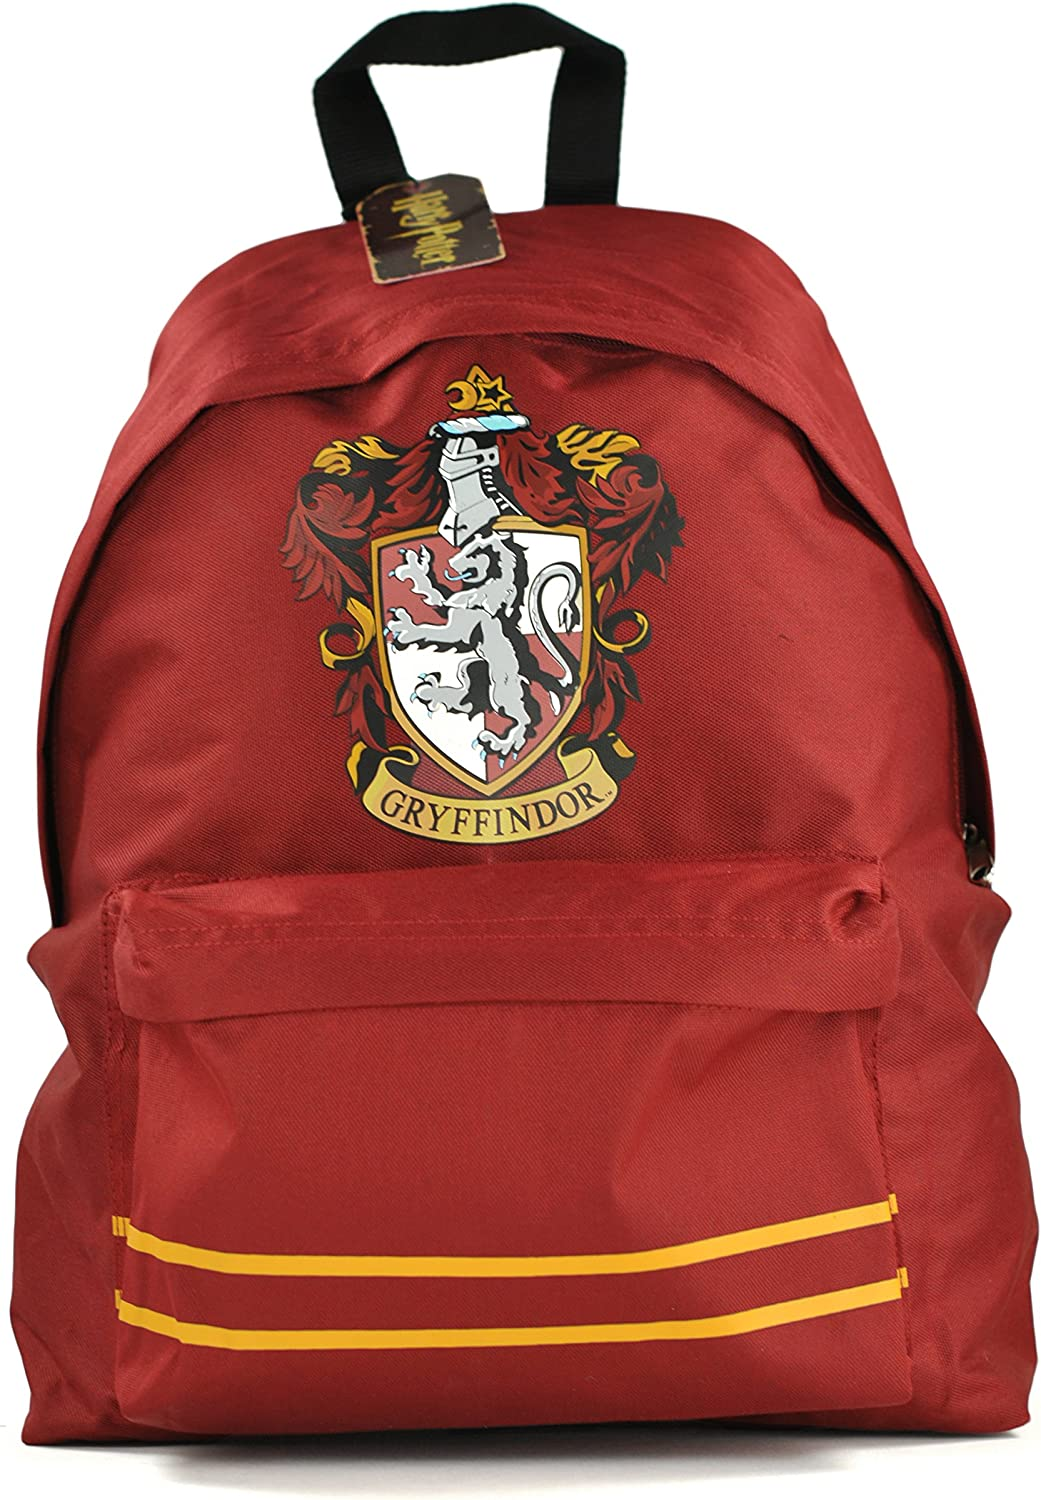 Half Moon Bay Harry Potter Sac /à dos avec blason Gryffondor